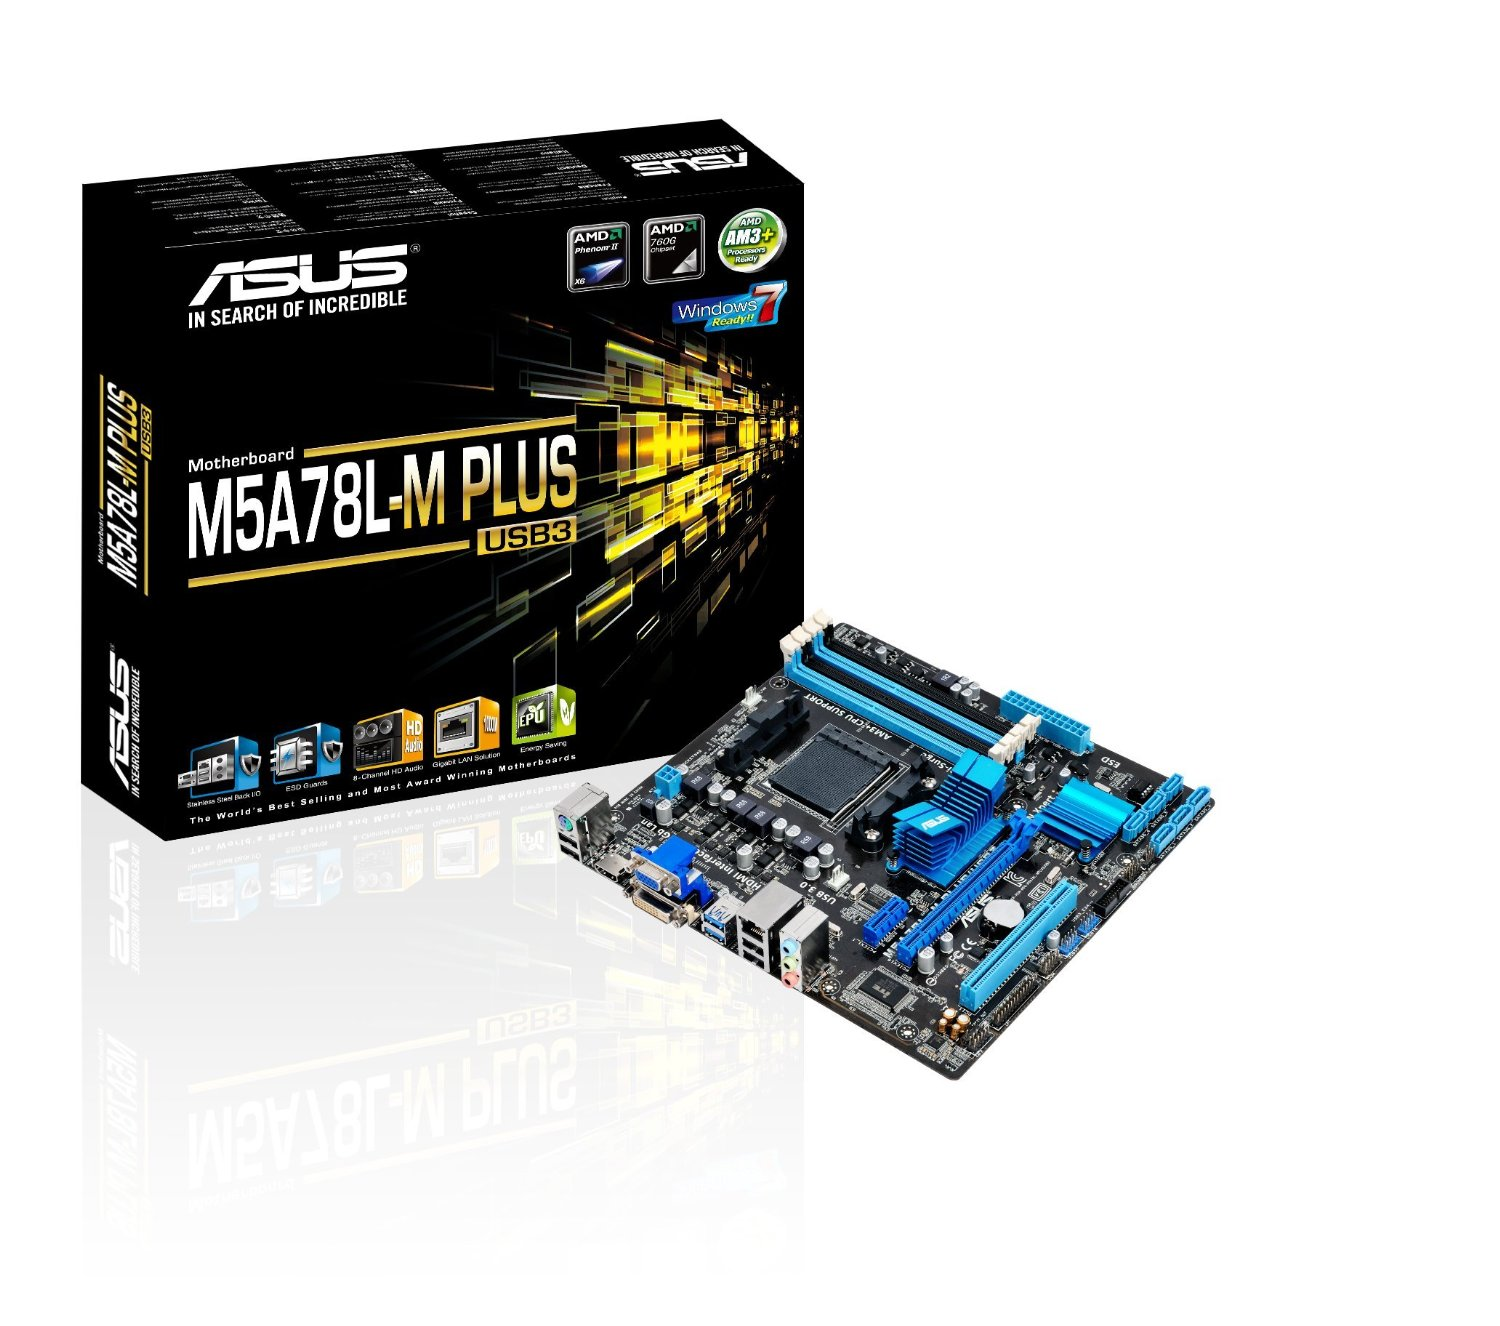 asus m5a78l m plus usb3 am3 ddr3 hdmi 760g microatx motherboard 97 asus m5a78l m plus usb3 am3 ddr3 hdmi 760g microatx motherboard  at crackthecode.co